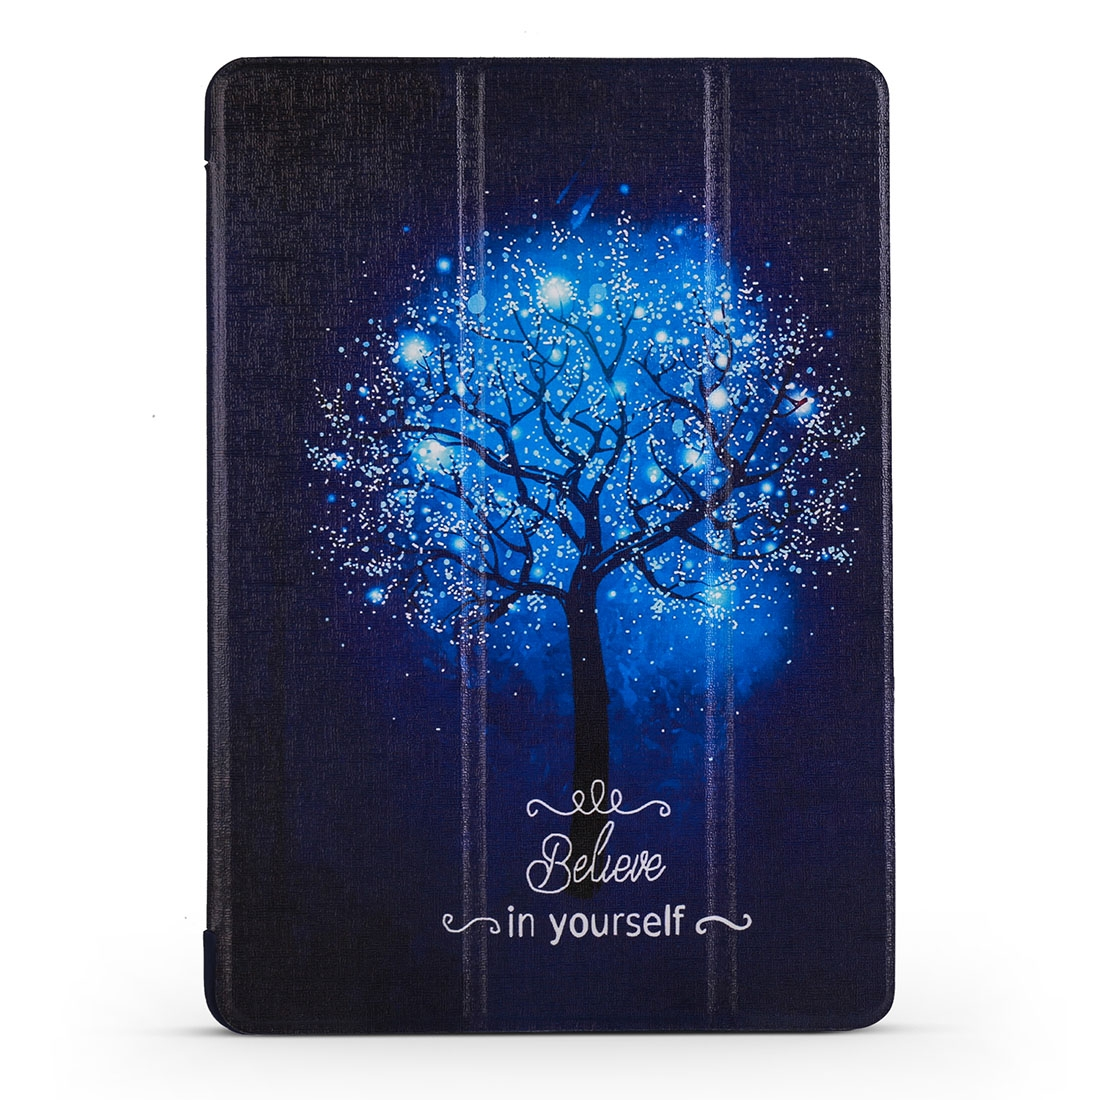 Blue Tree Leather iPad Air 2 Case (2019)/ Pro 10.5 inch, with Tri-Fold Honeycomb Durable Cover